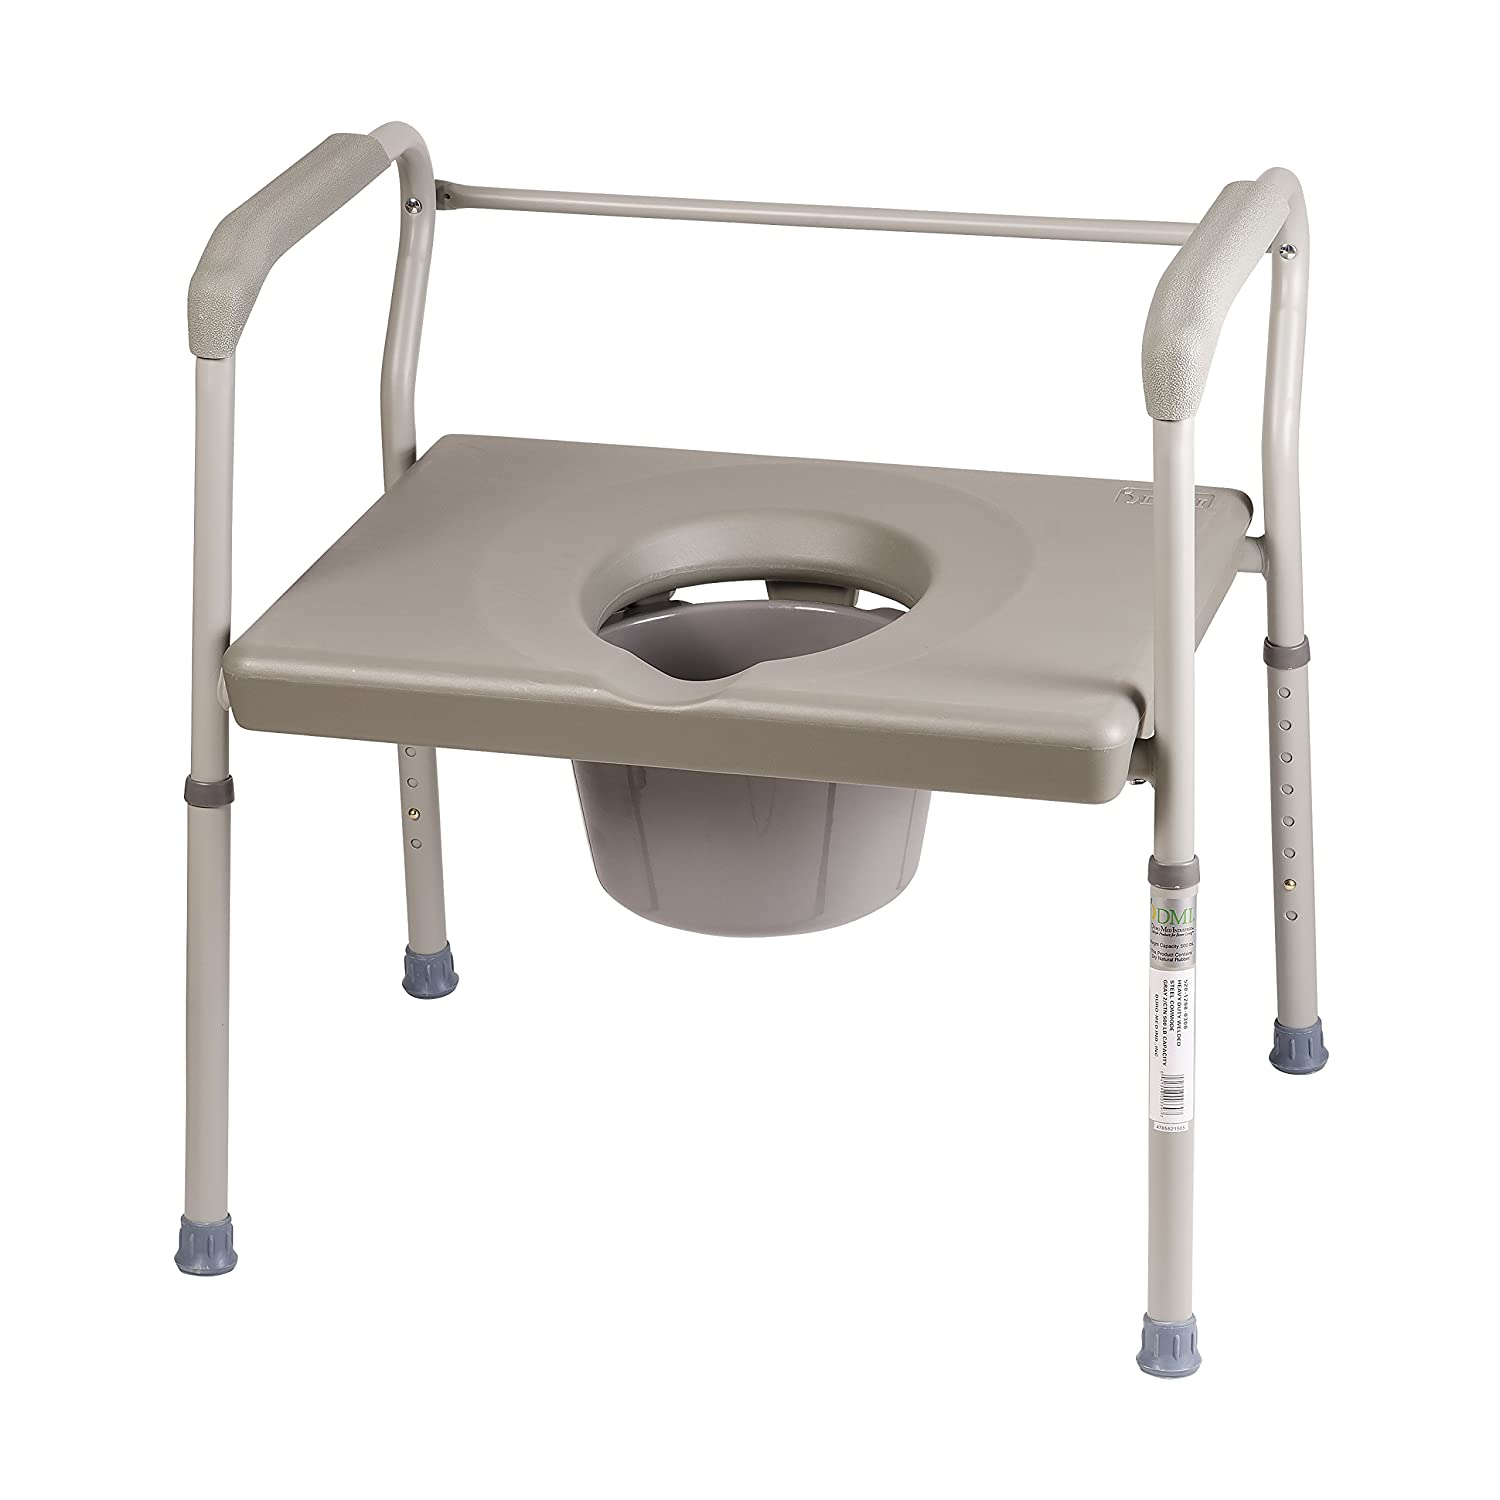 Amazon.com: Duro-Med Bedside Commode Chair, Heavy-Duty Steel Commode ...